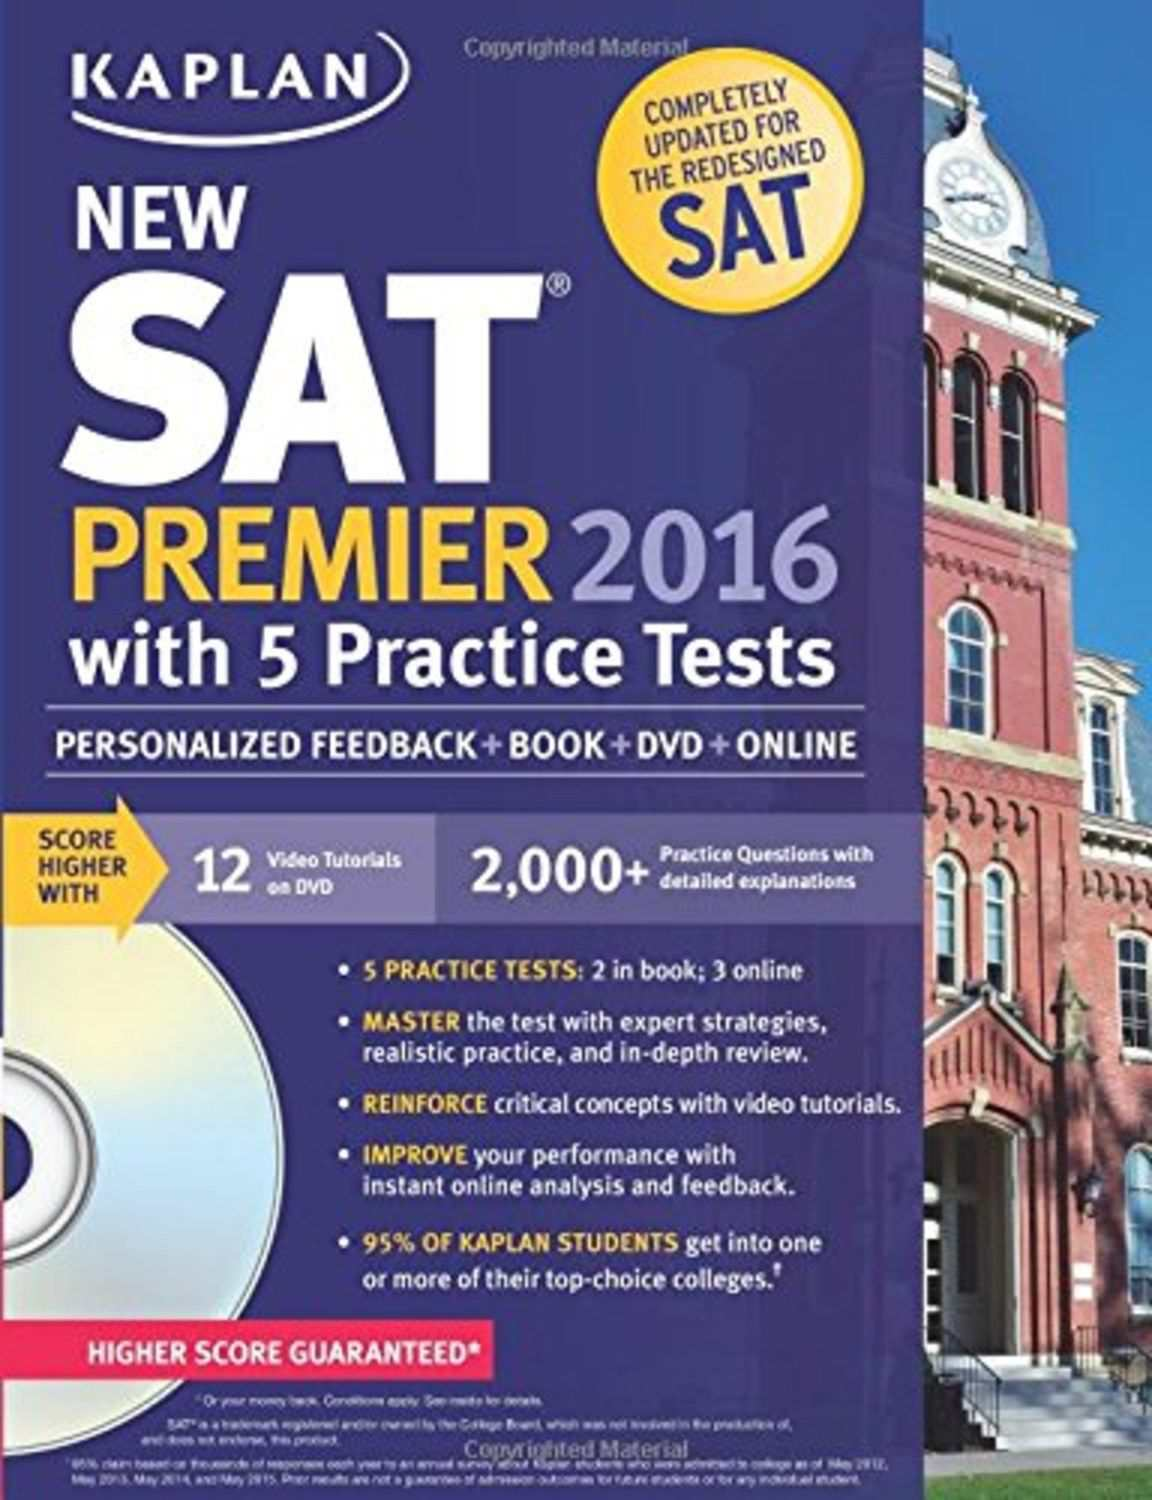 Workbooks kaplan sat math workbook : The Top 3 Books for the New SAT in 2016